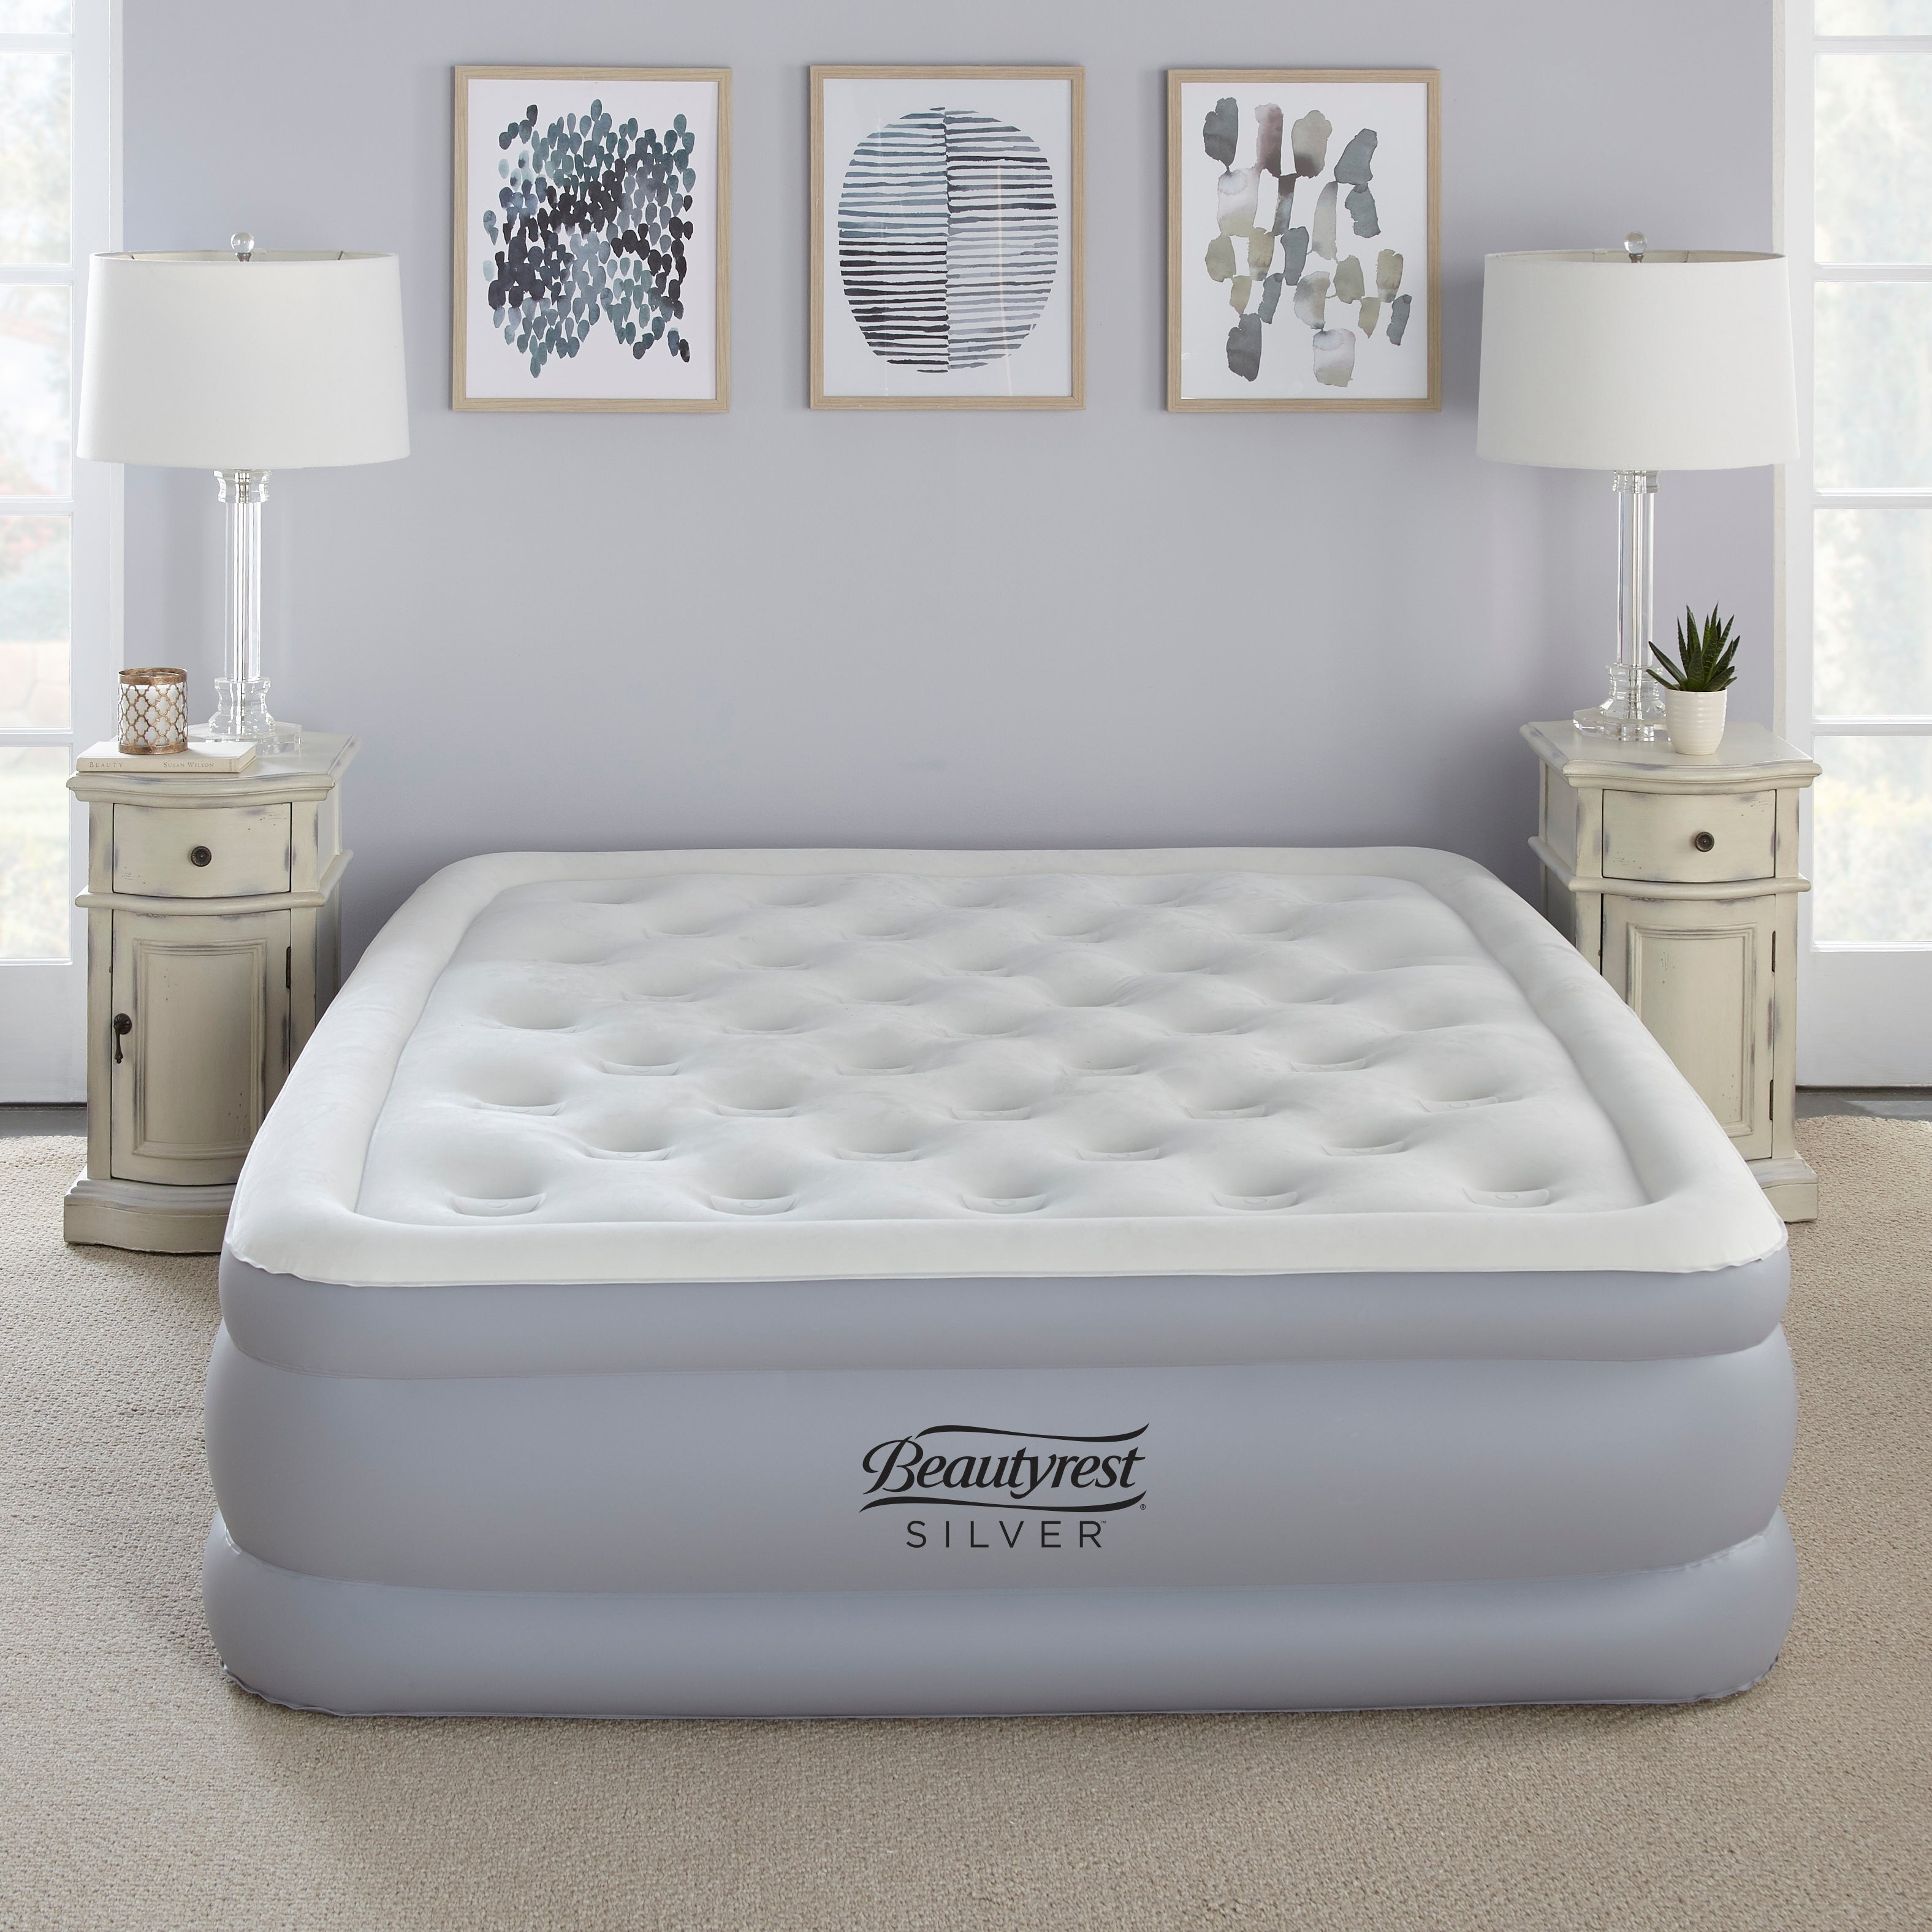 24 Inch Queen Size Top Sleeping Air Bed Inflatable Mattress Built-in Pump New